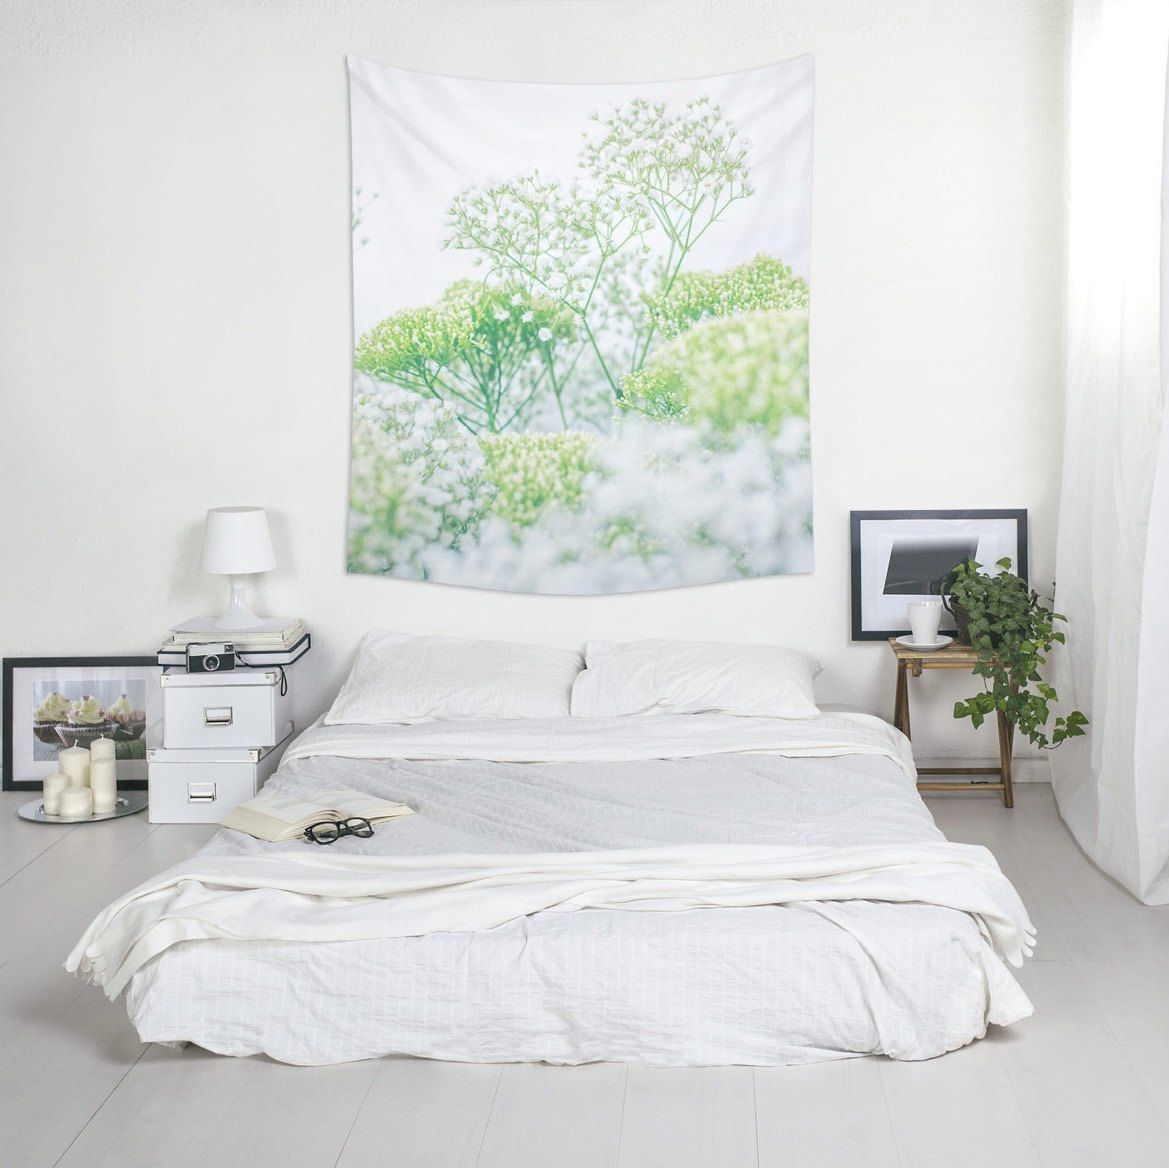 Wall Paint Mockup - Floral wall tapestry home decorating wall art polyester fabric green and white nature decor